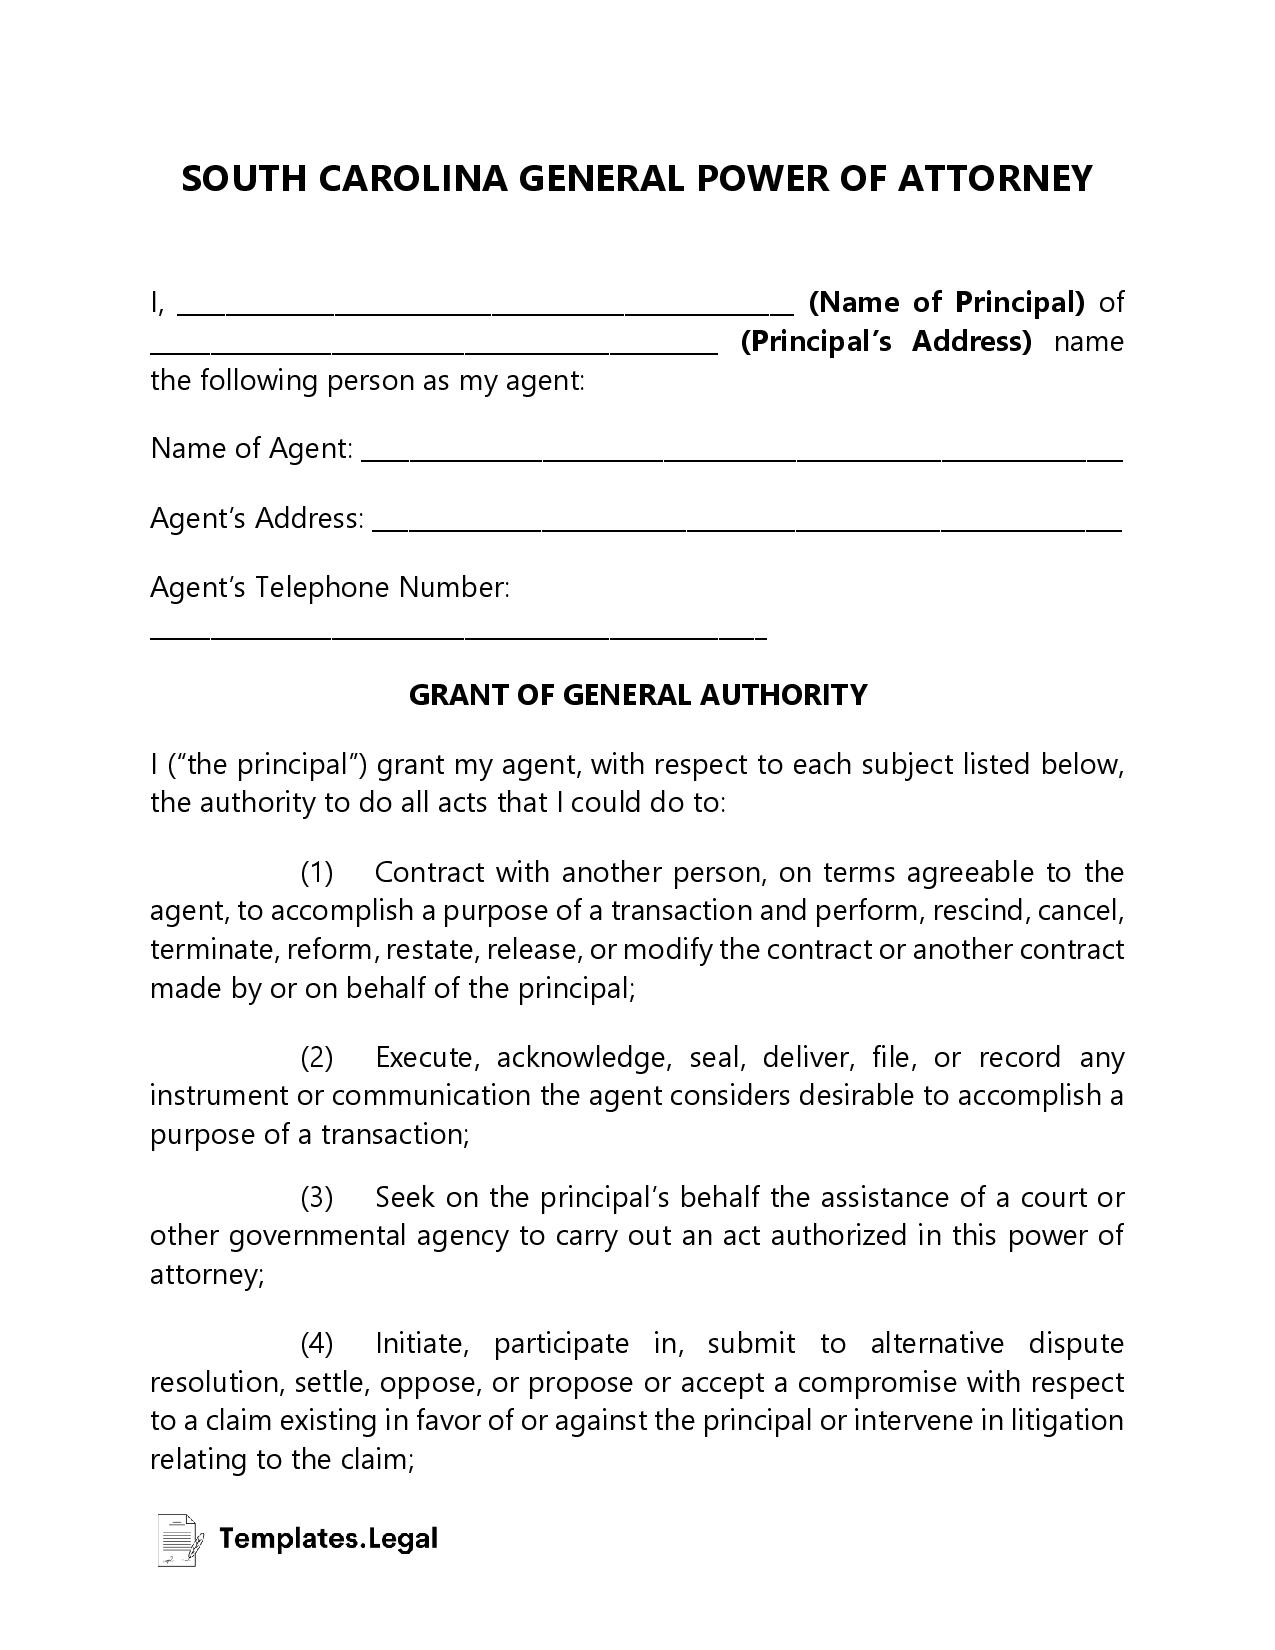 South Carolina General Power of Attorney - Templates.Legal